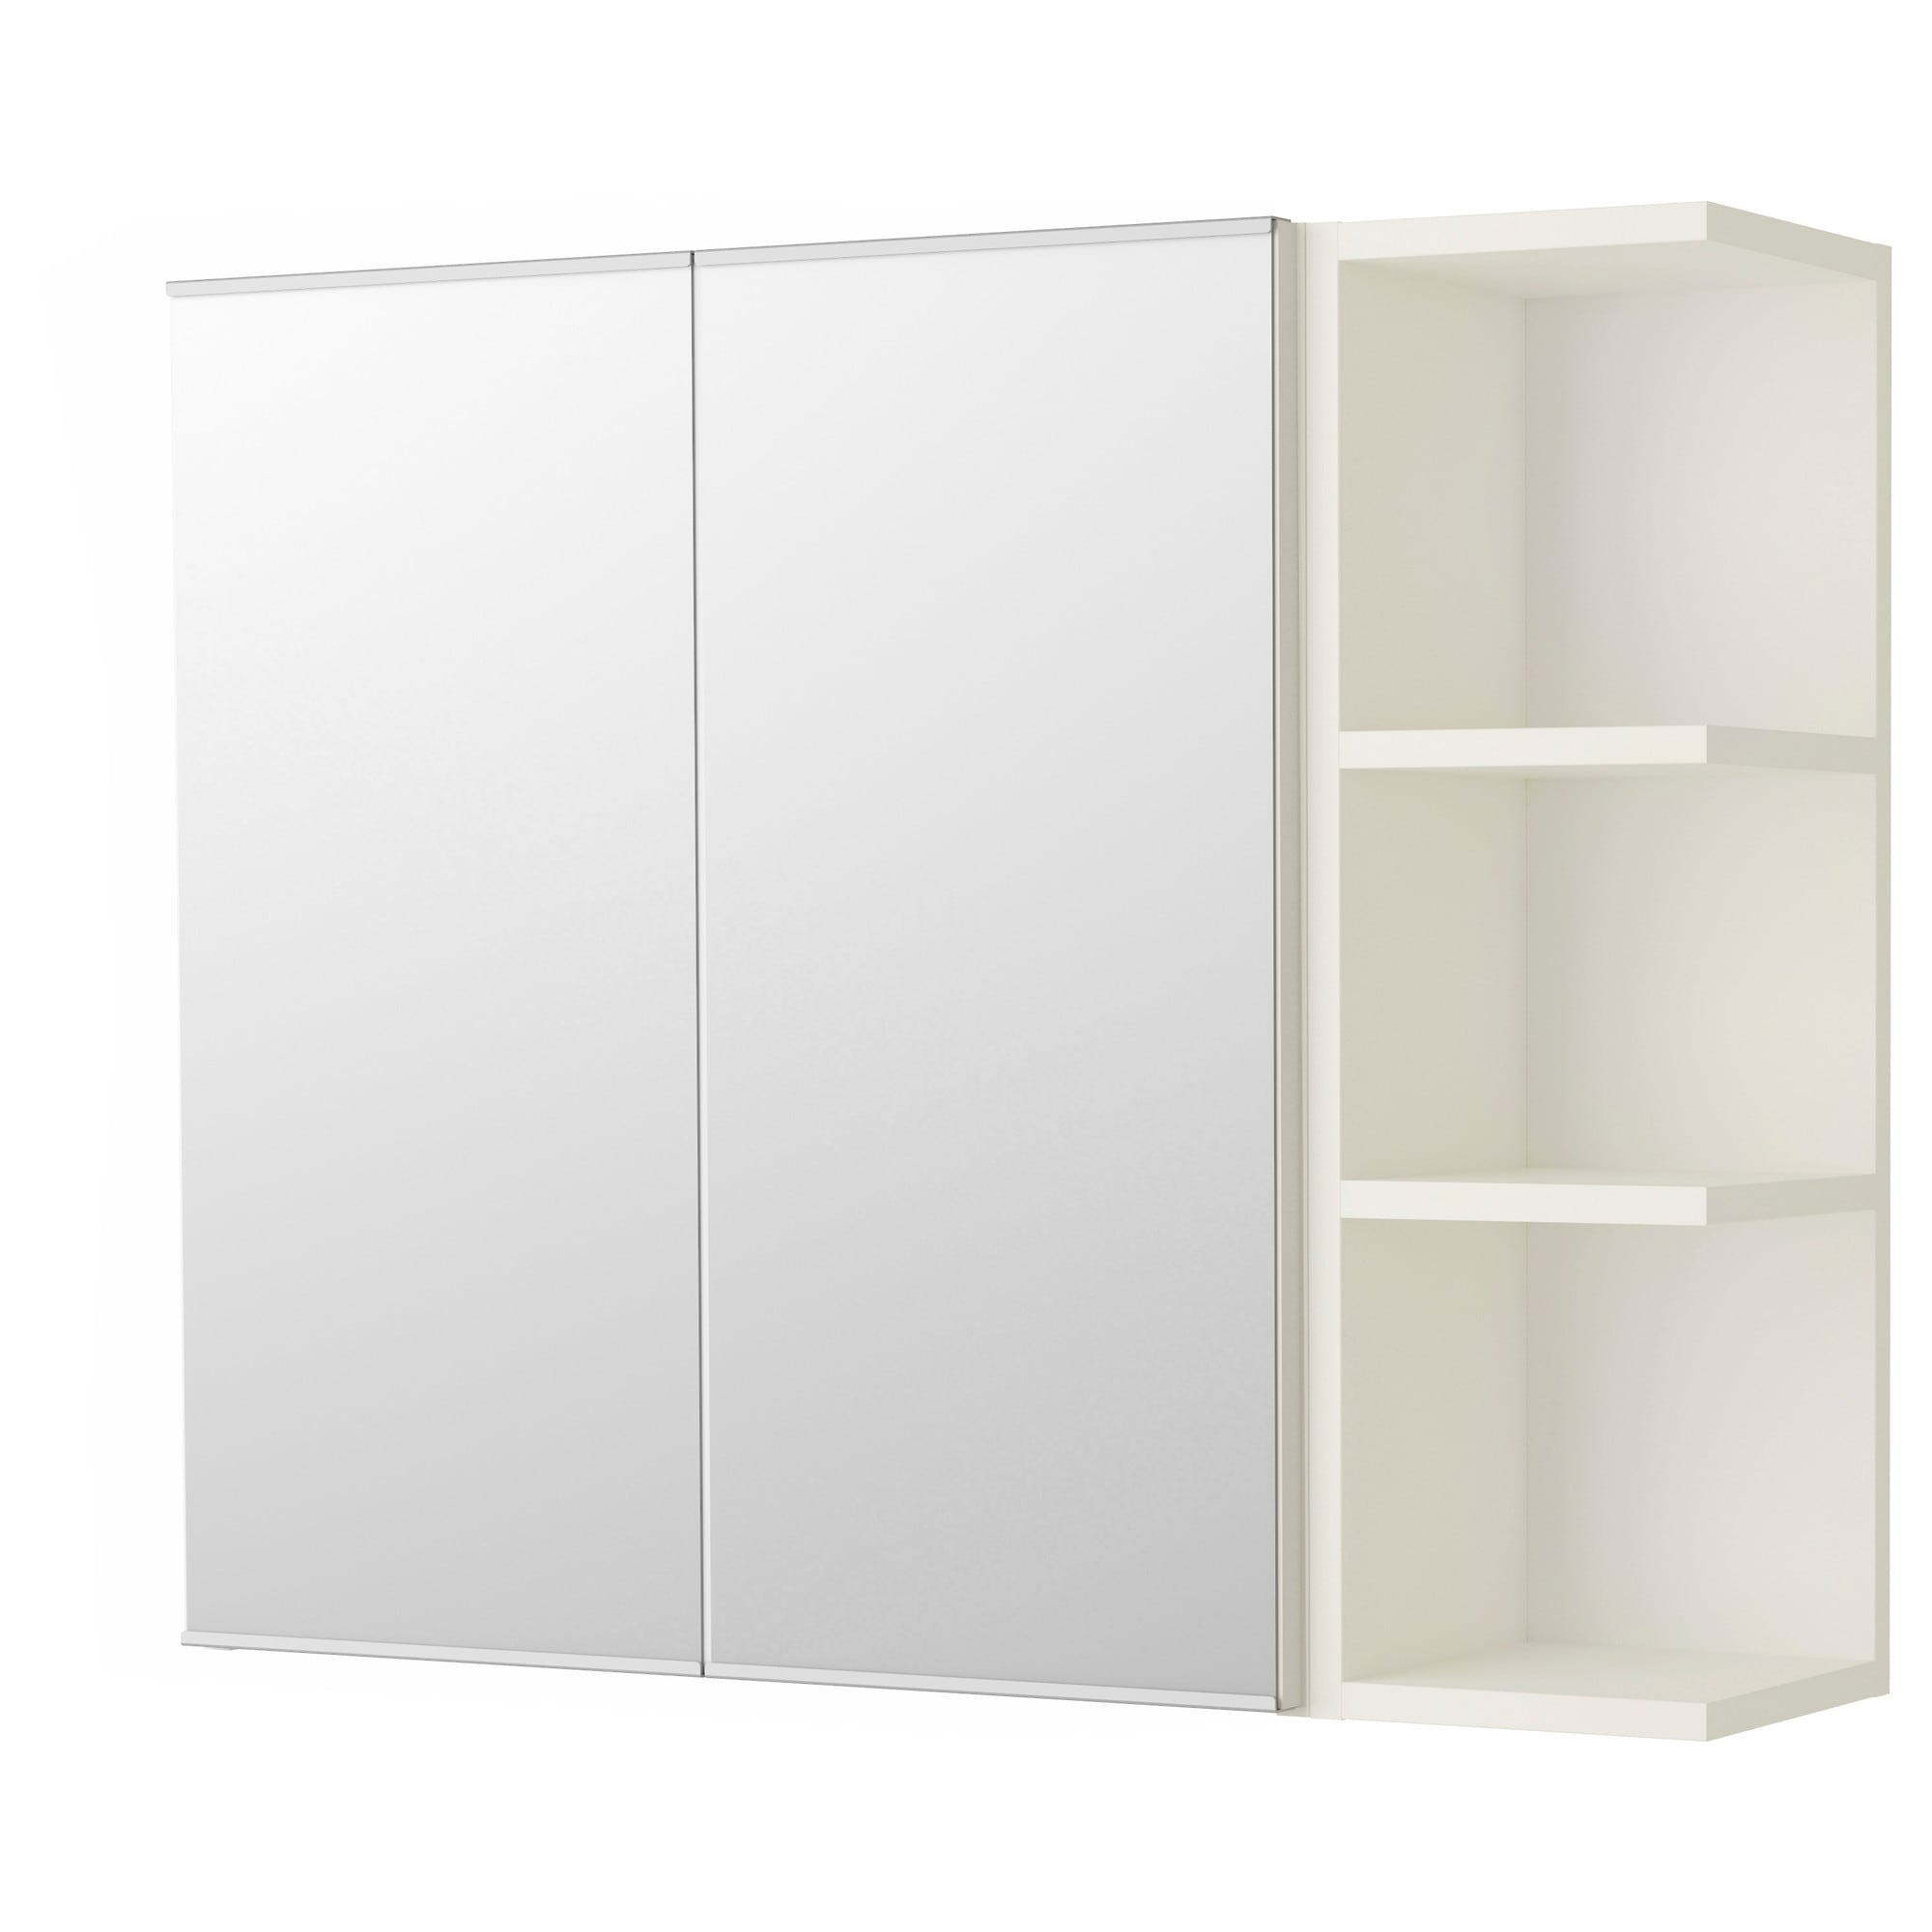 25 cm wide bathroom cabinet for Bathroom cabinets 25cm wide